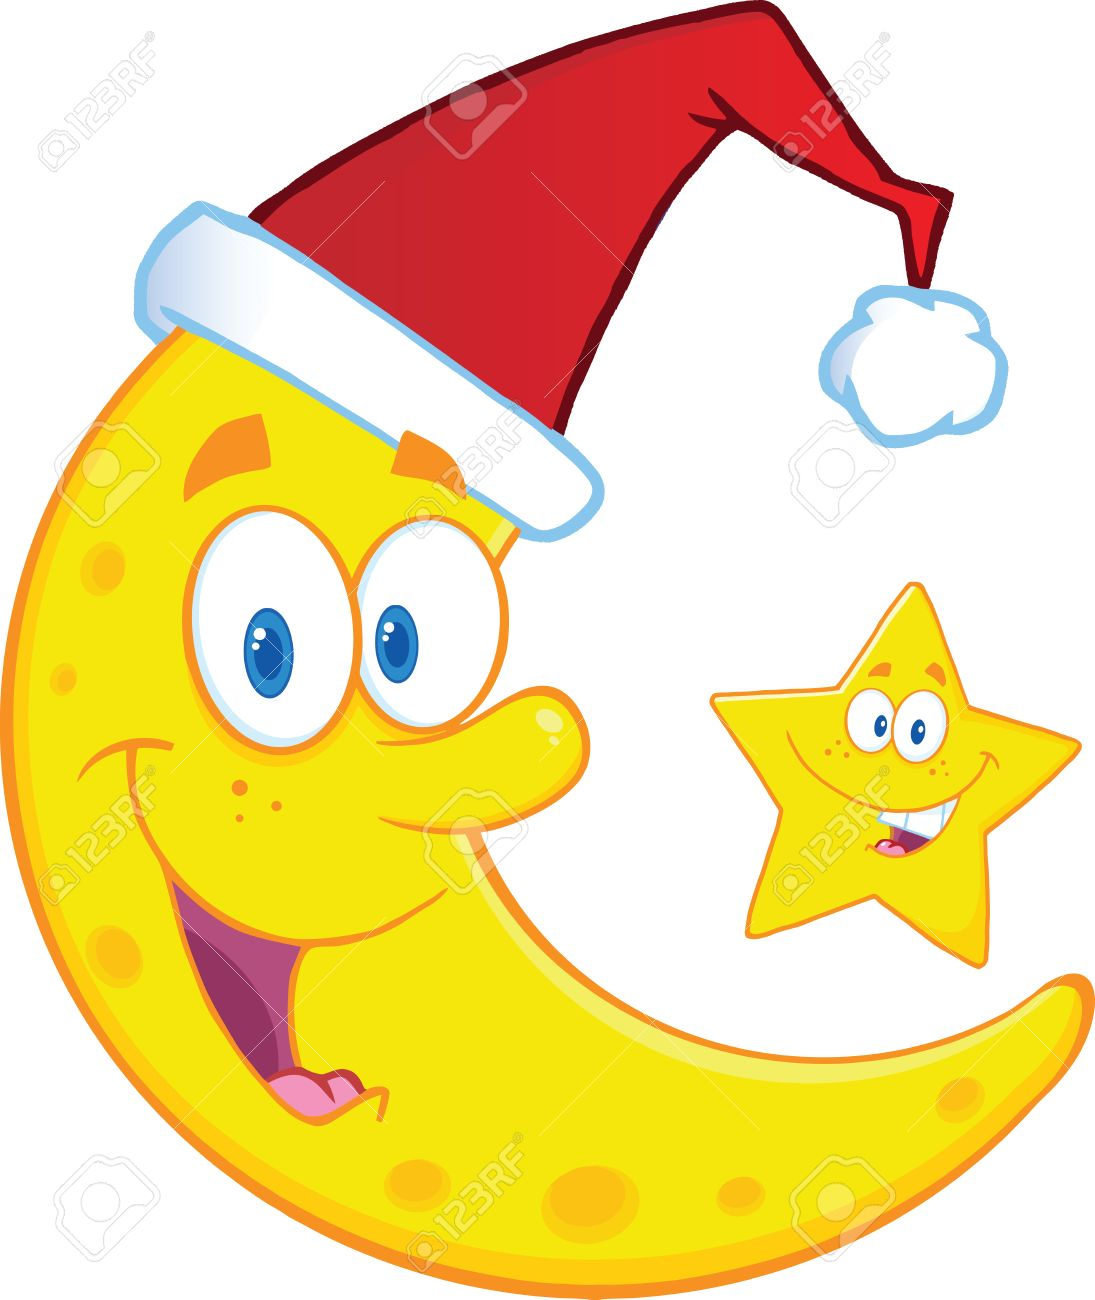 crescent moon with santa hat and christmas star cartoon characters rh 123rf com Crescent Moon Symbol crescent shaped moon cartoon images